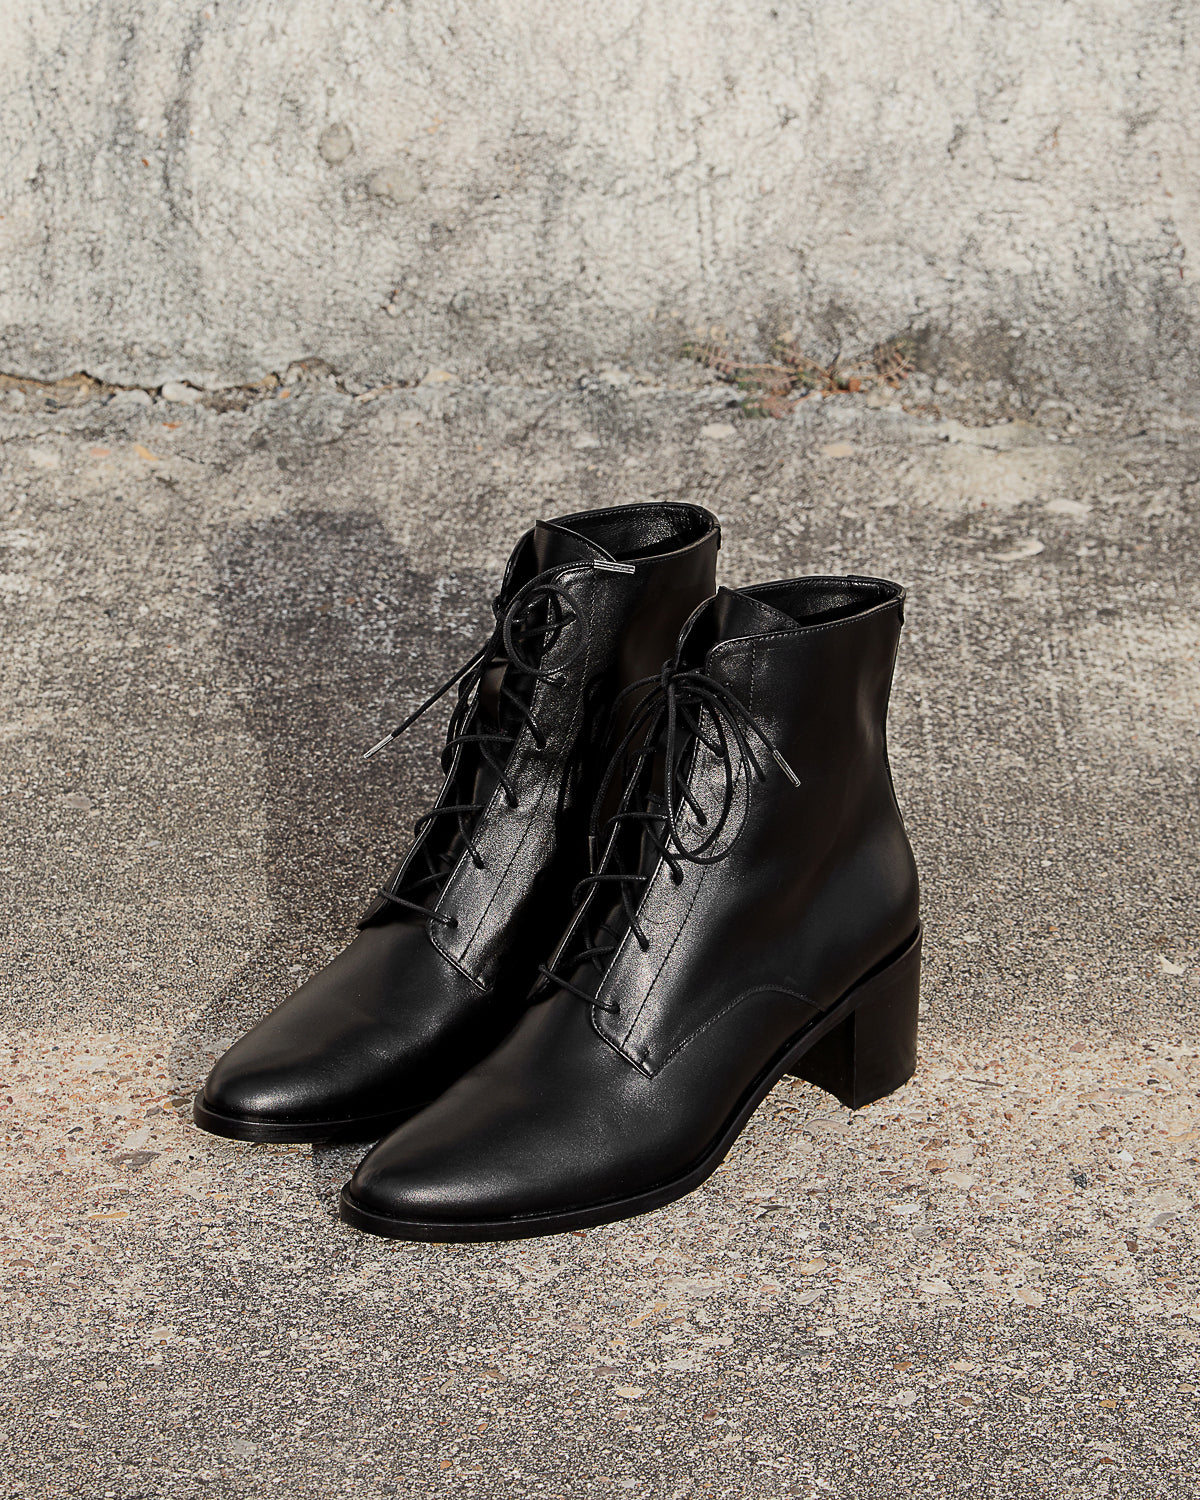 FREDA SALVADOR - ACE BOOT - BLACK CALFSKIN